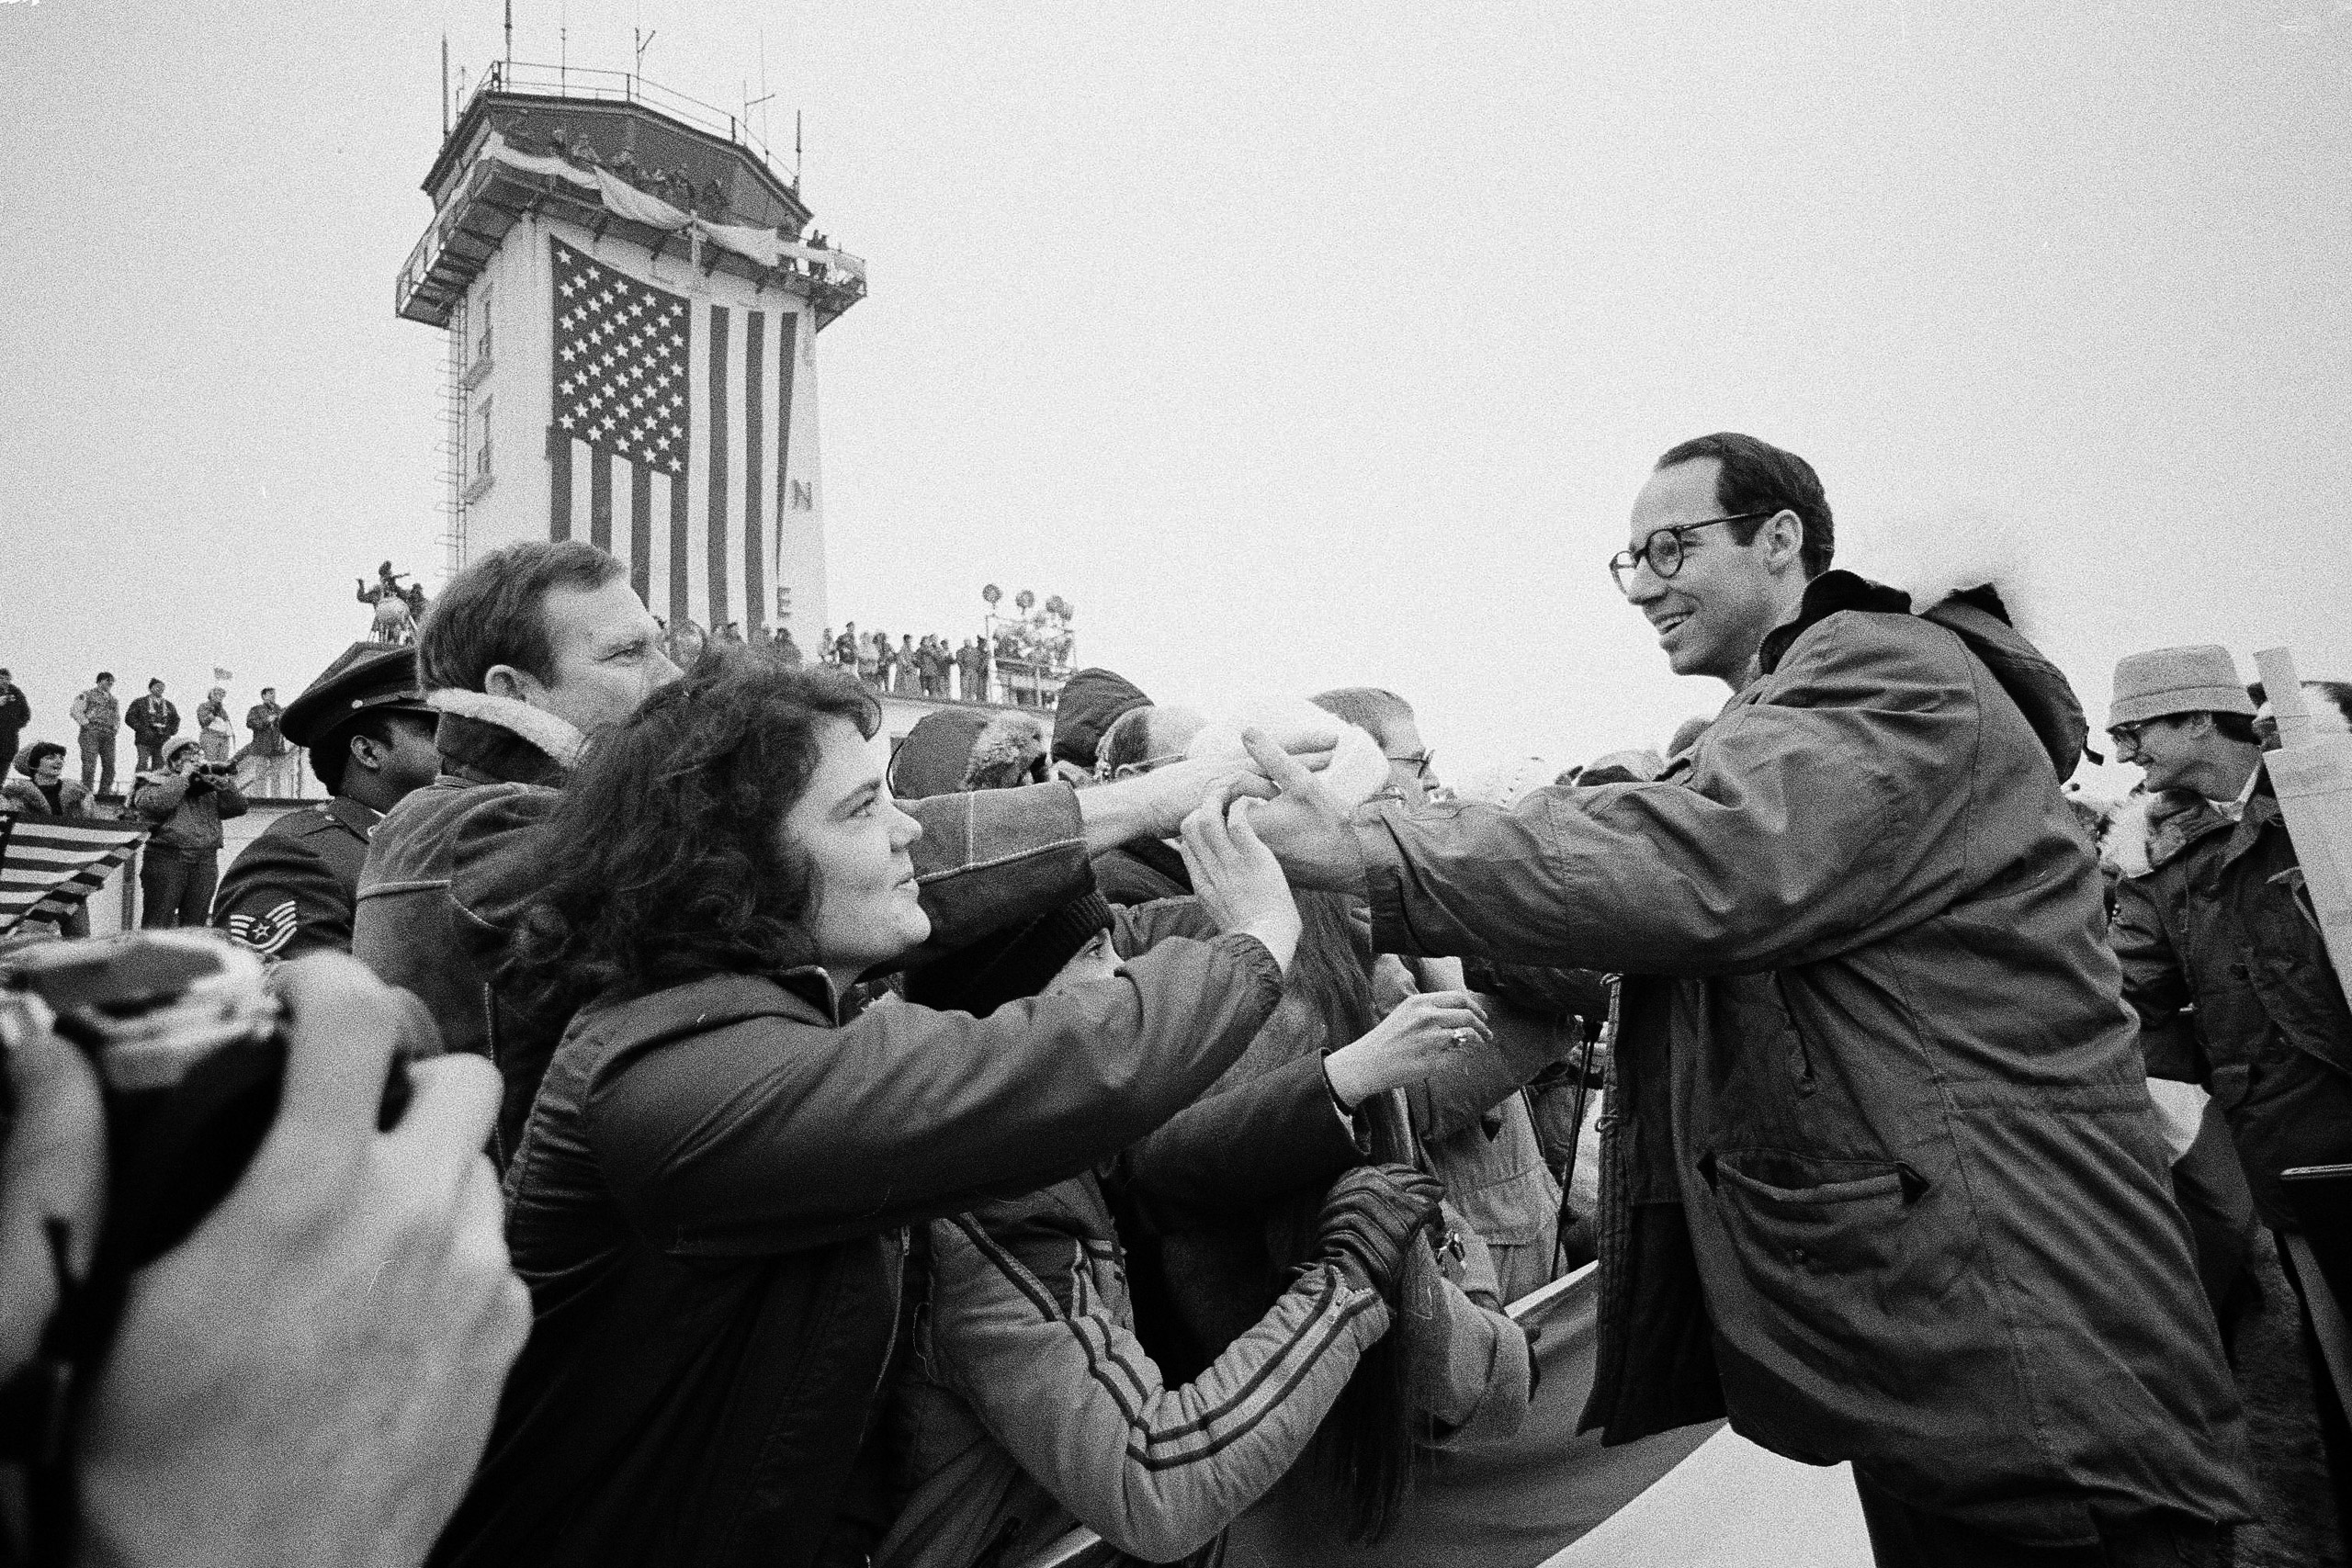 Former American hostage John Graves from Reston, Va., shakes hands with people in the crowd at the Rhein-Main U.S. Air Force base in Frankfurt, West Germany on Jan. 21, 1981, shortly before traveling home to the United States.